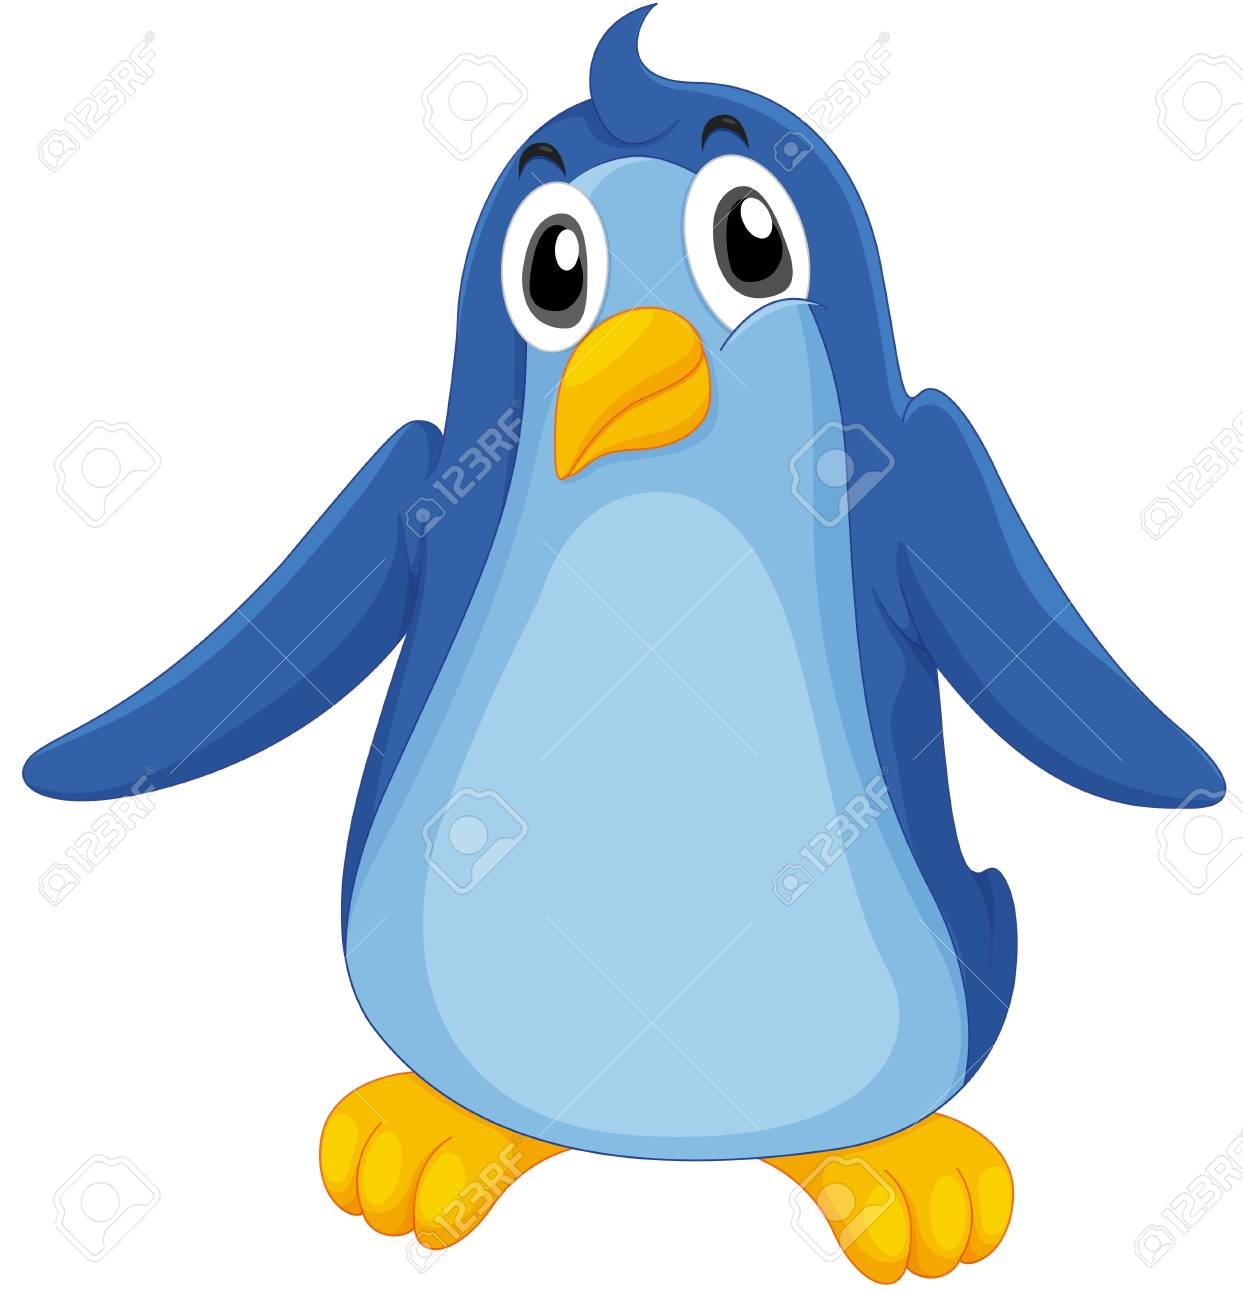 Illustration of a comical penguin Stock Vector - 13376637